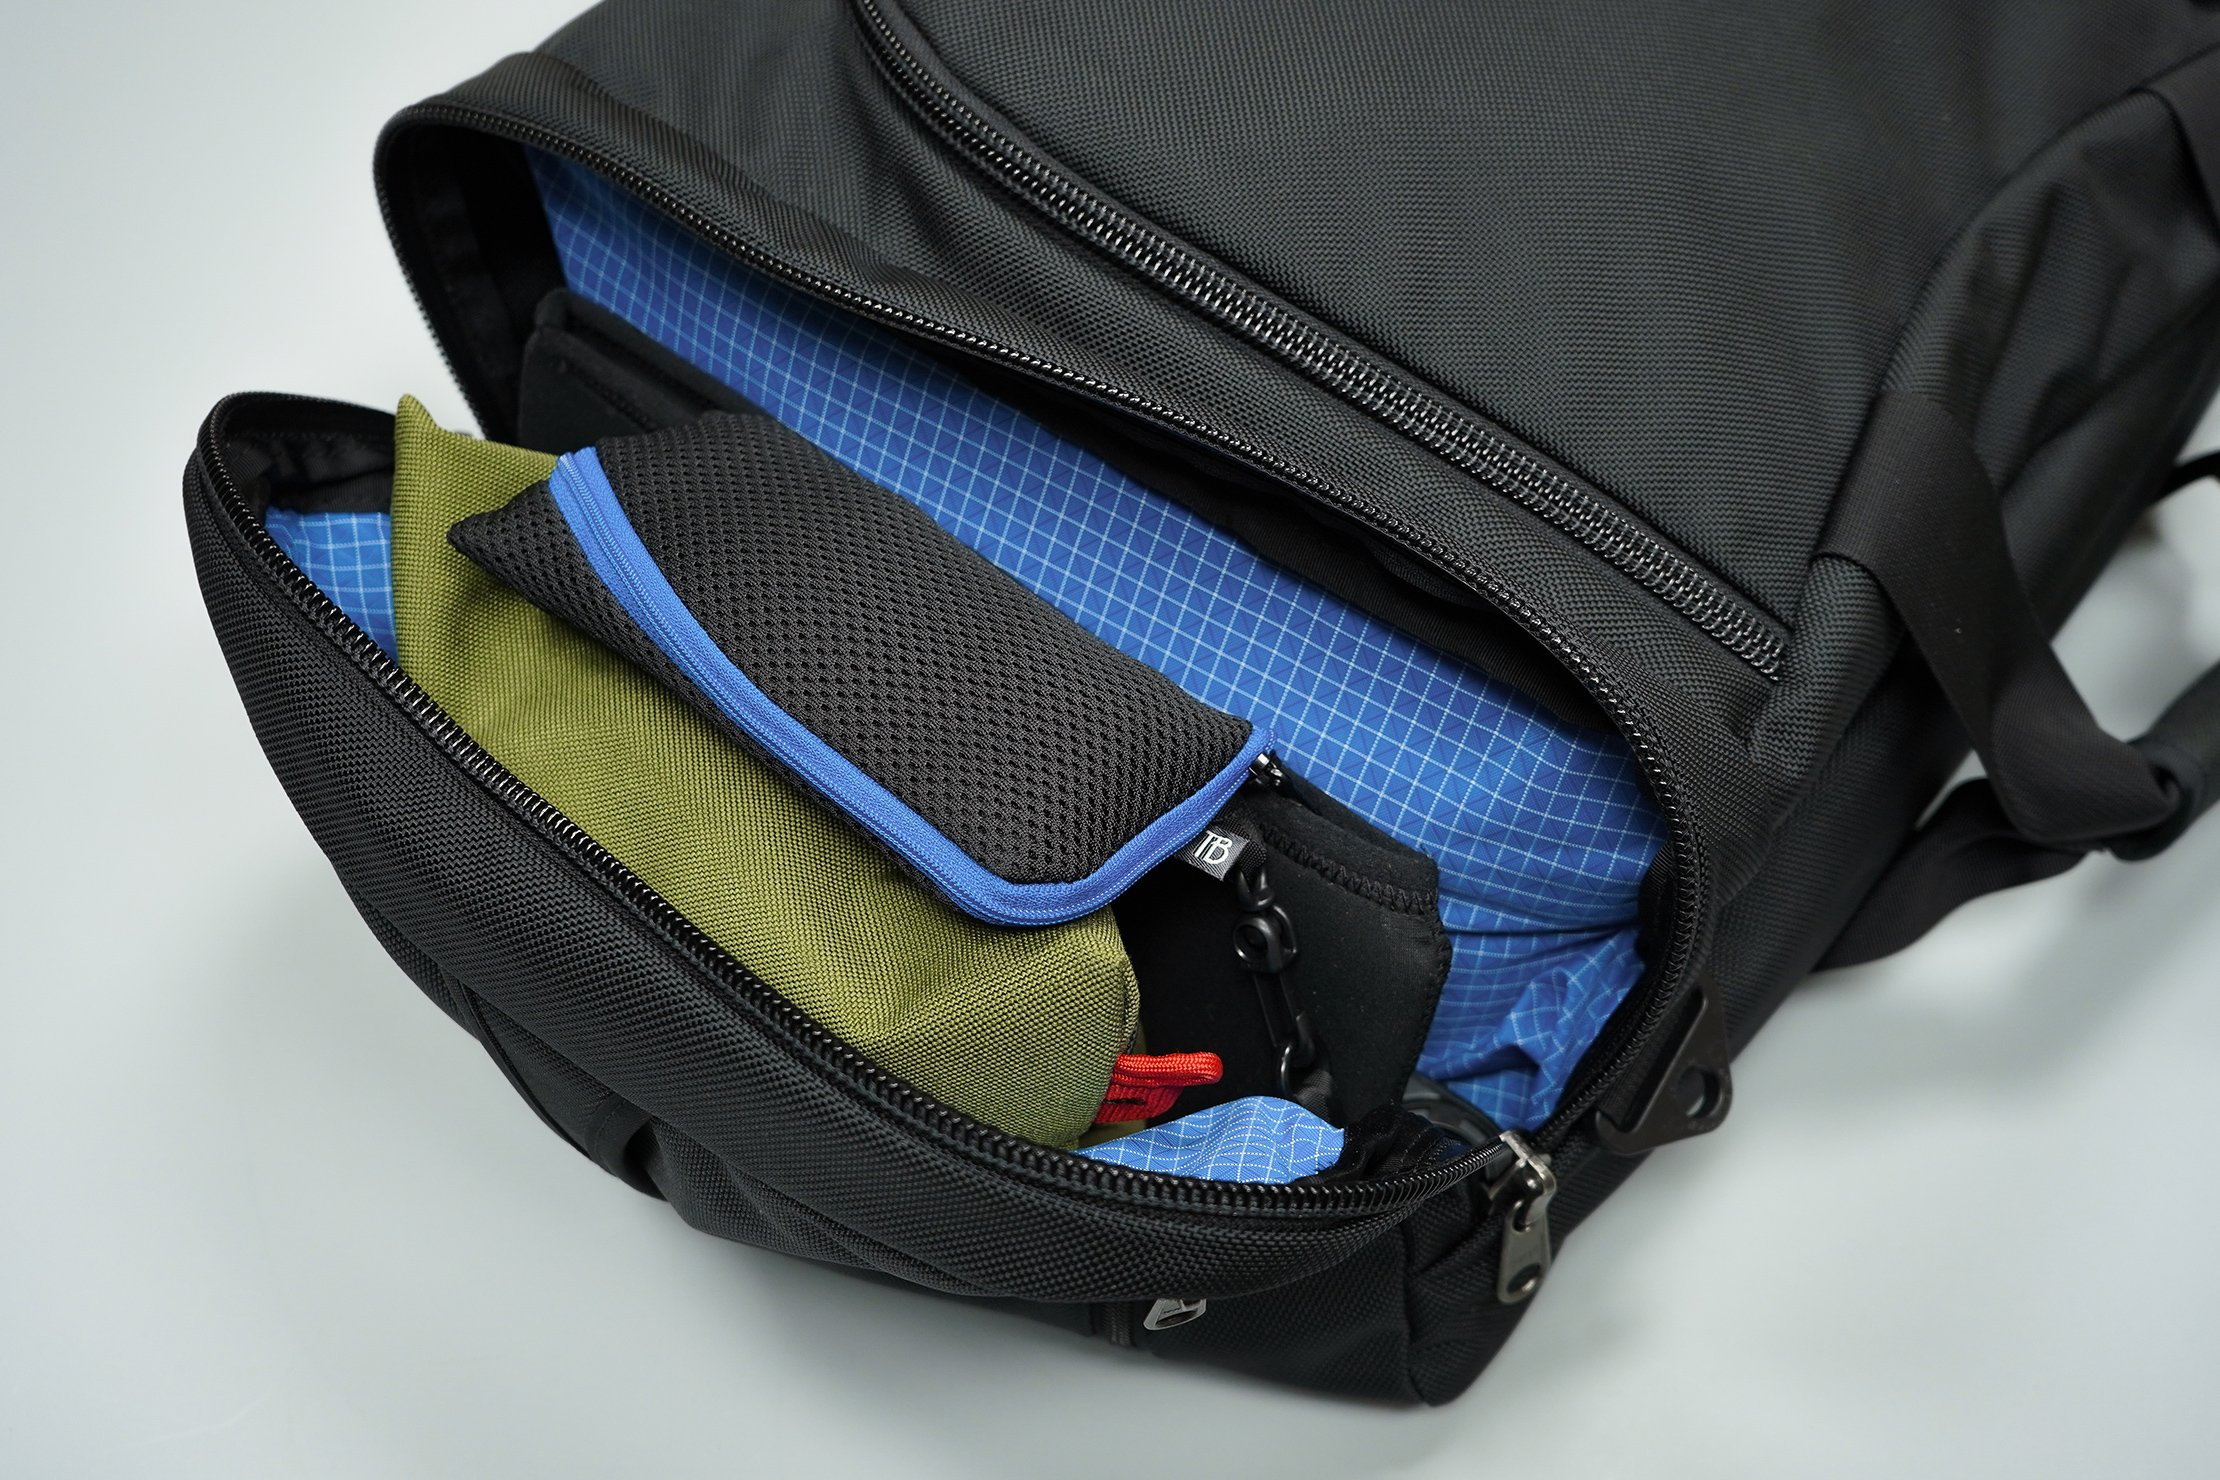 Tom Bihn Aeronaut 45 Side Compartment Packed